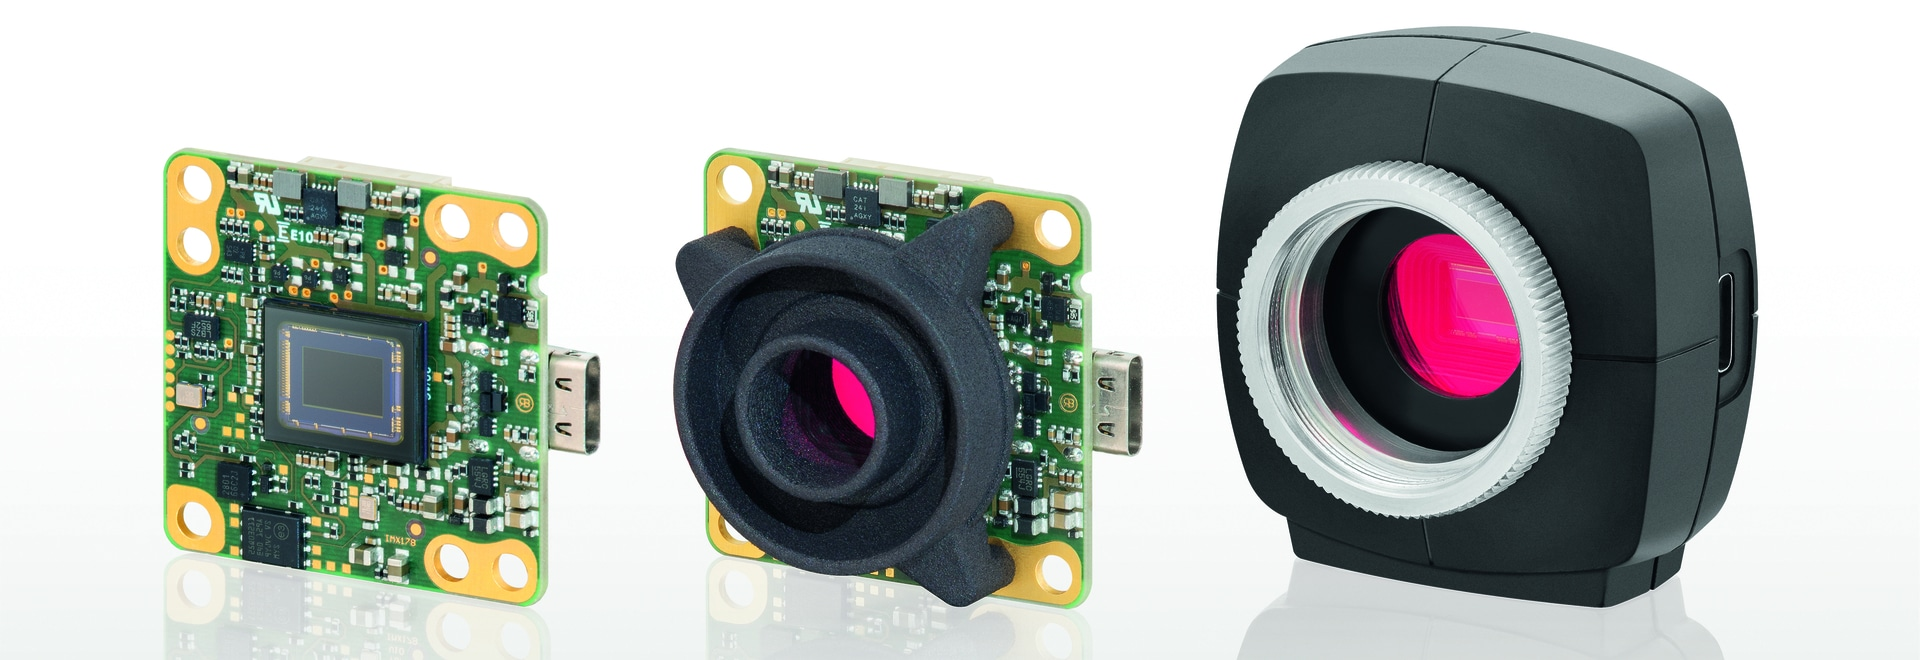 USB 3.1 Gen 1 project cameras with the PYTHON 480 sensor from ON Semiconductor